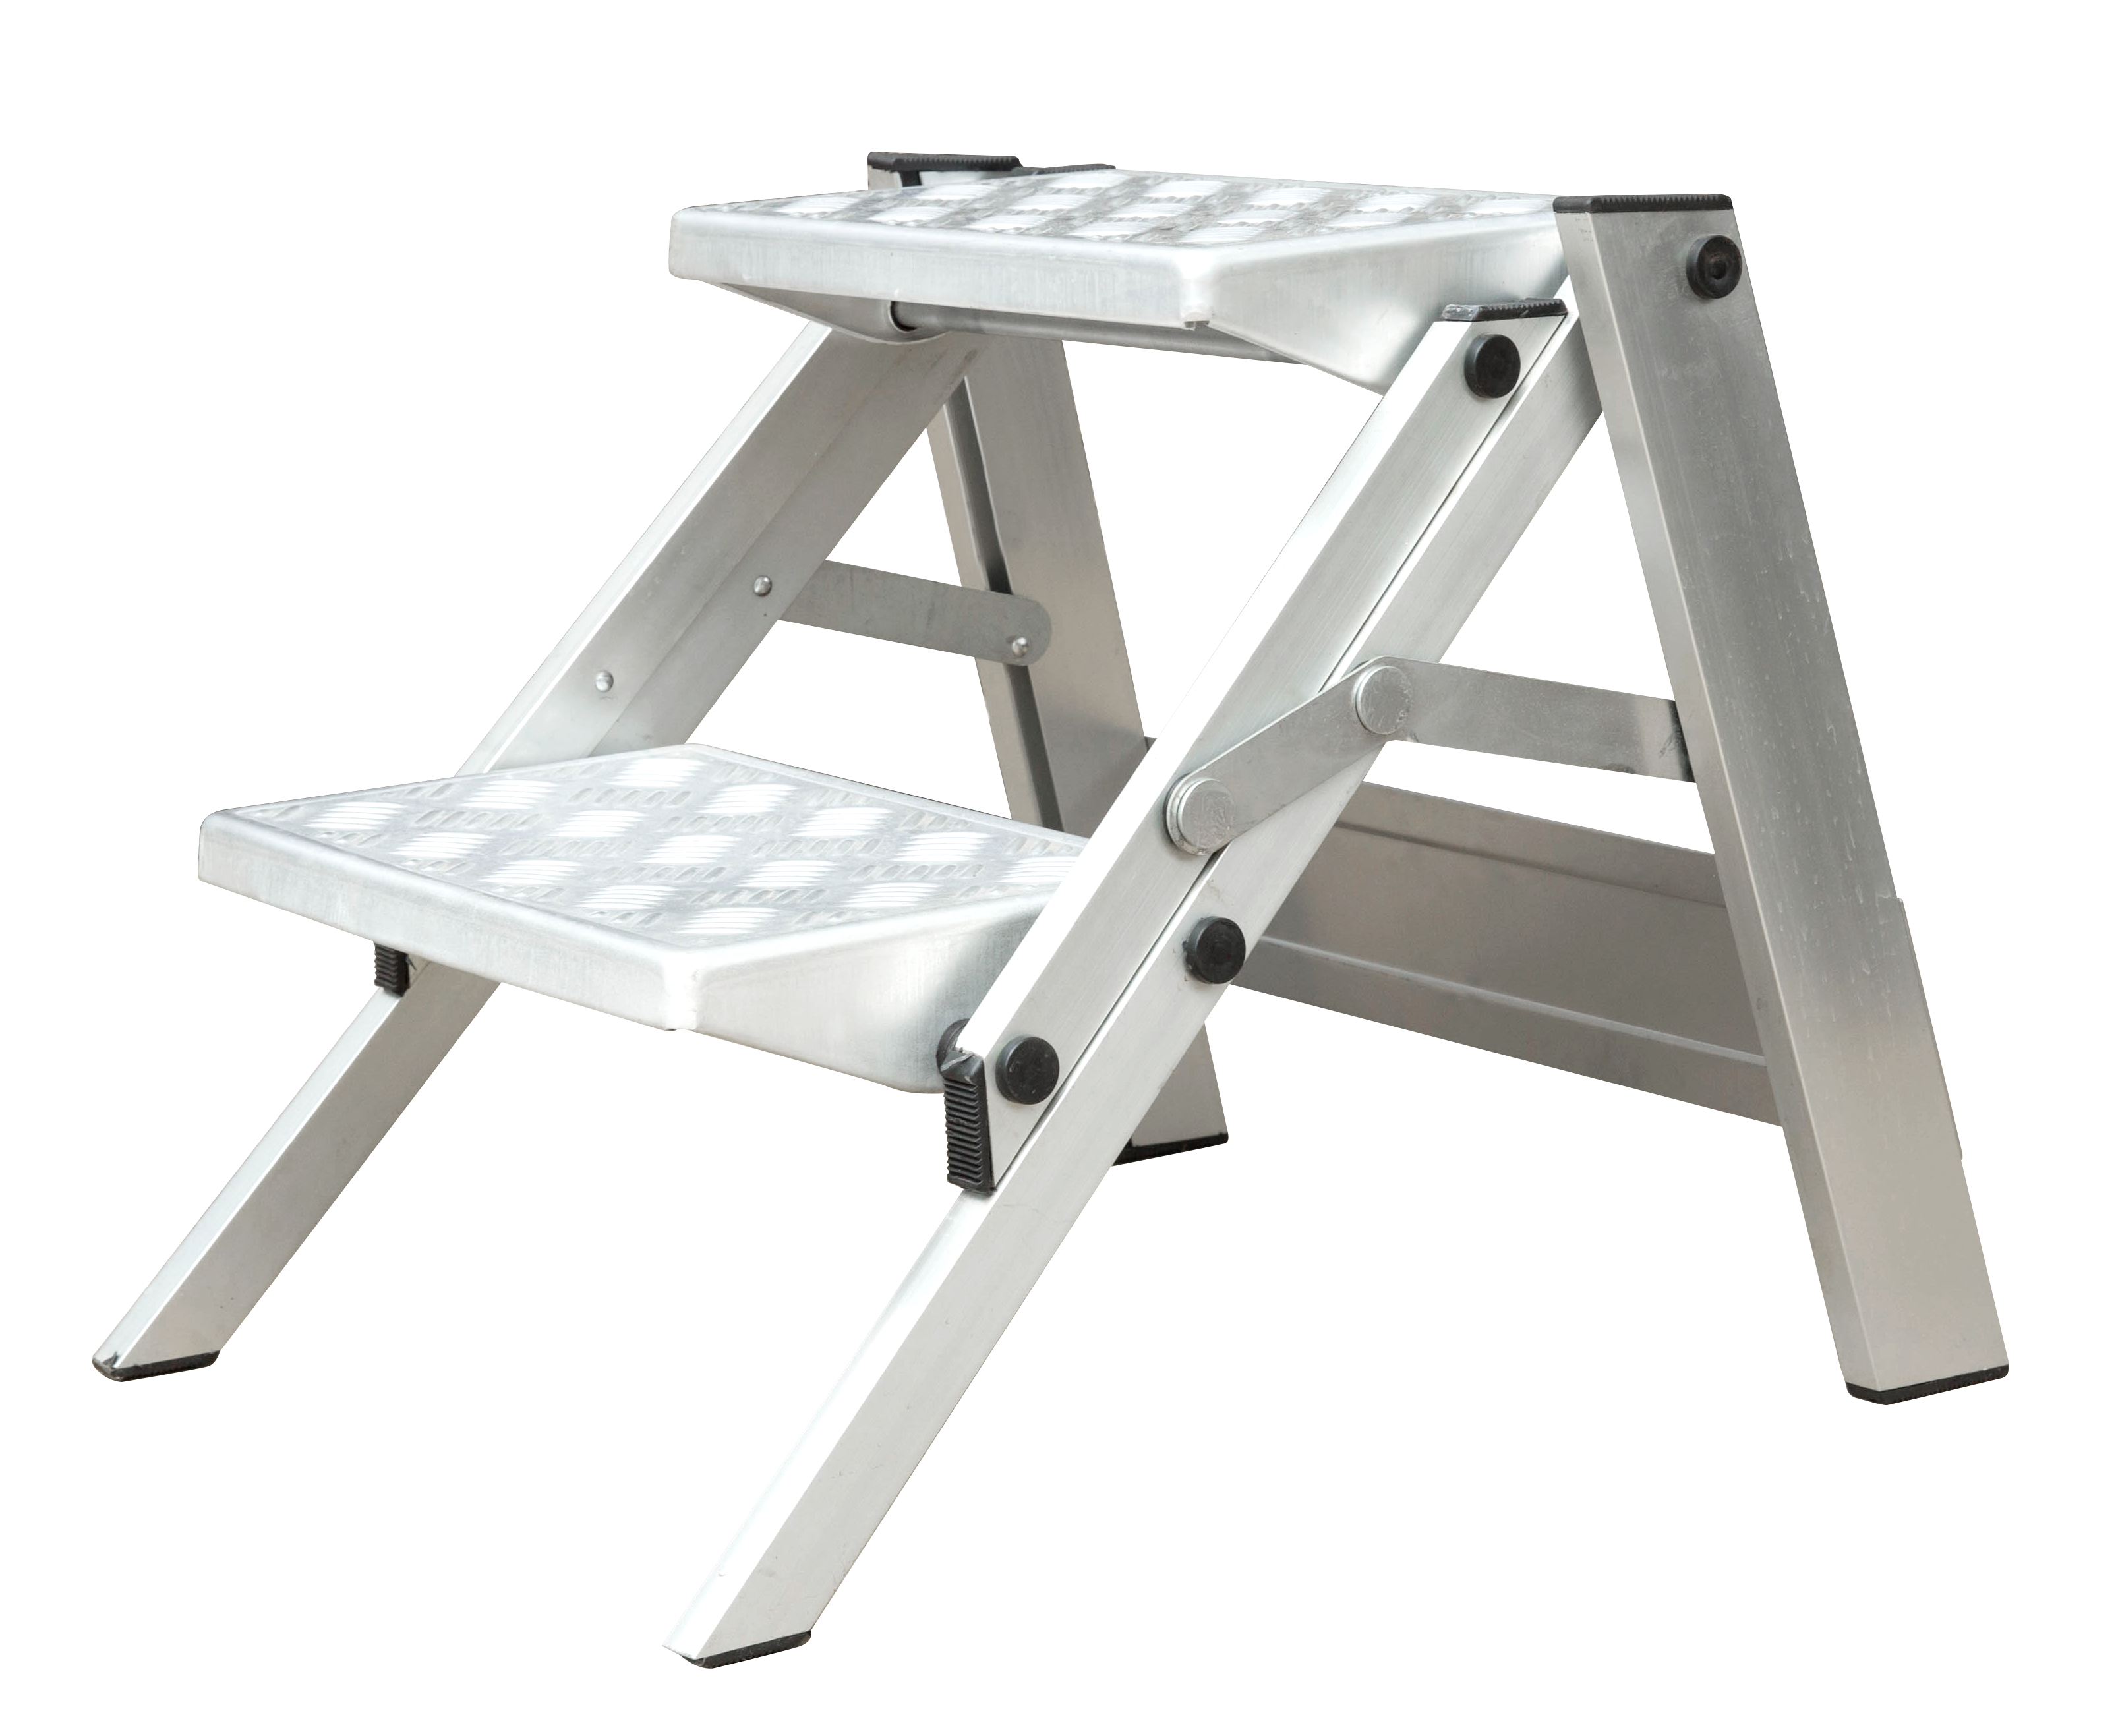 Marvelous New City Kitchen Lightweight Aluminium Ladder Portable Ladder Buy Aluminium Ladder Portable Ladder Aluminium Cat Ladder Aluminum Folding Step Stool Onthecornerstone Fun Painted Chair Ideas Images Onthecornerstoneorg